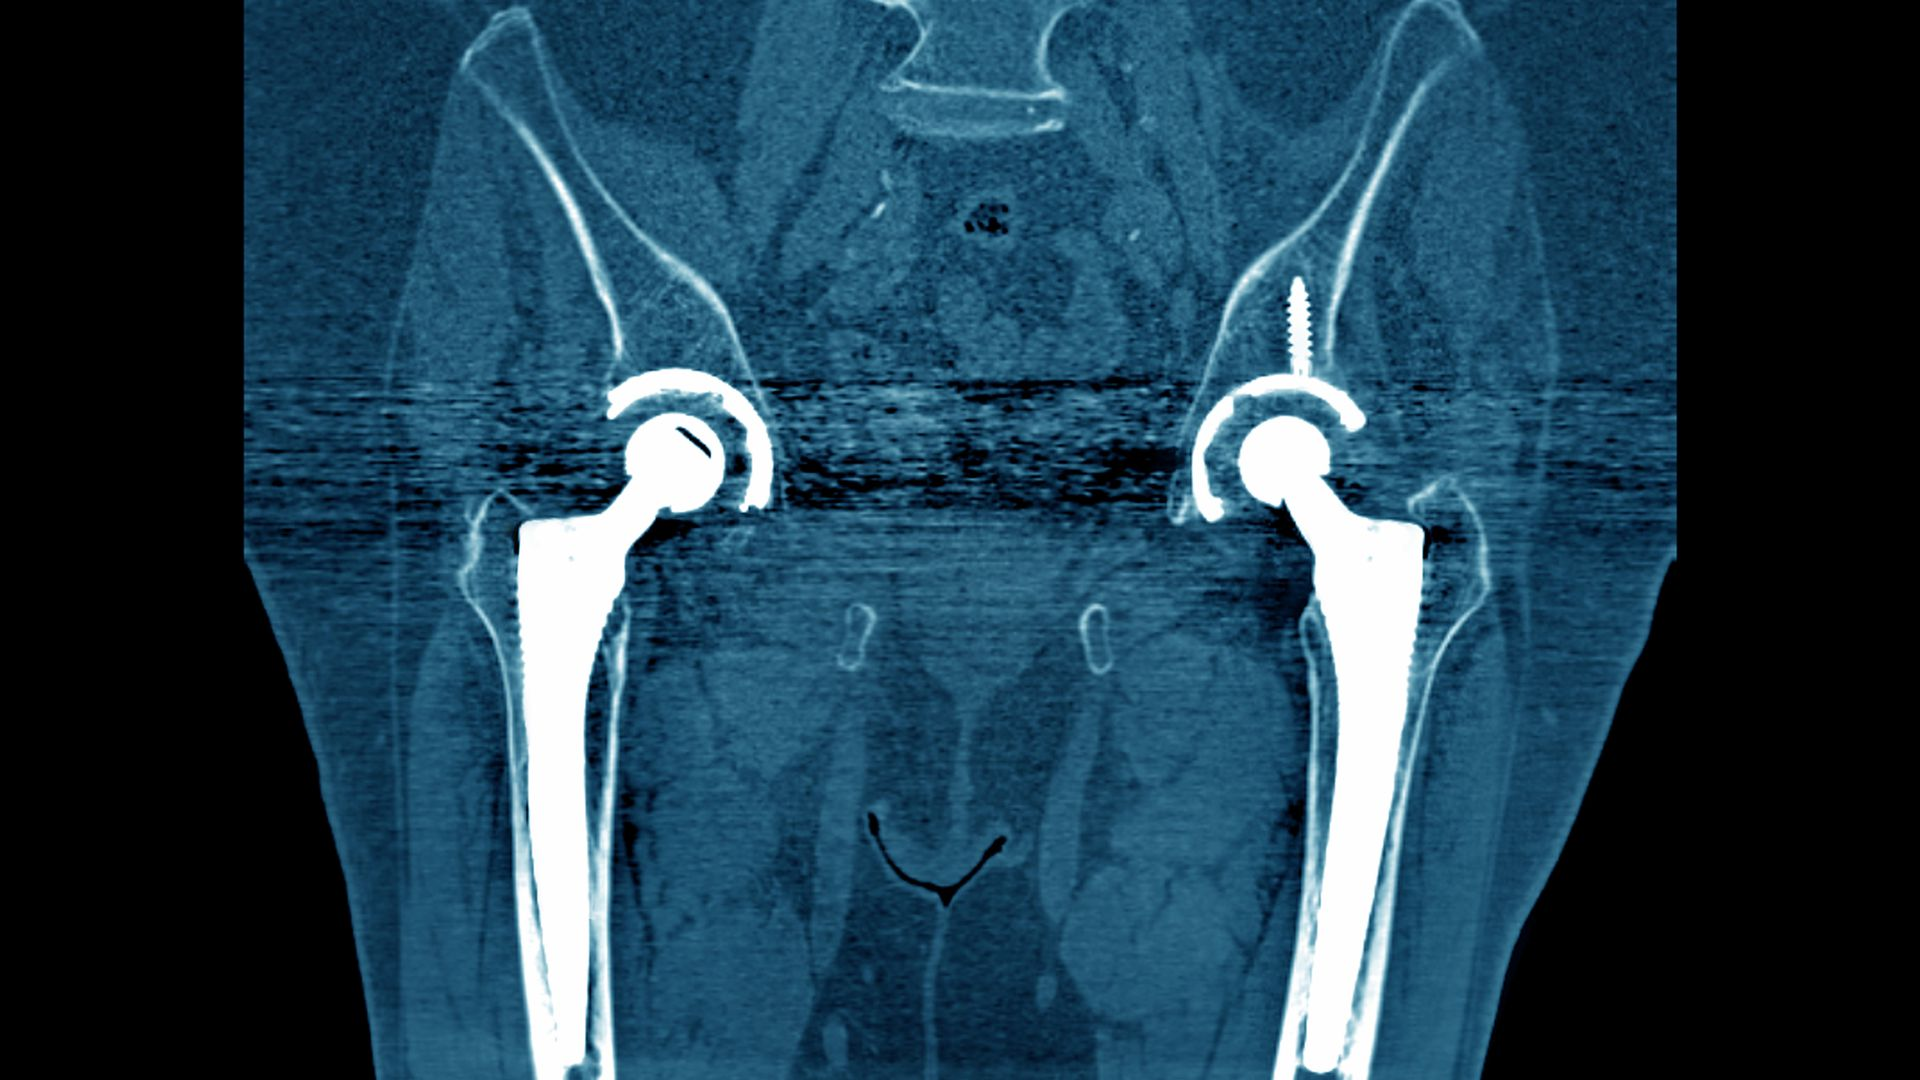 A CT image of hip implants.